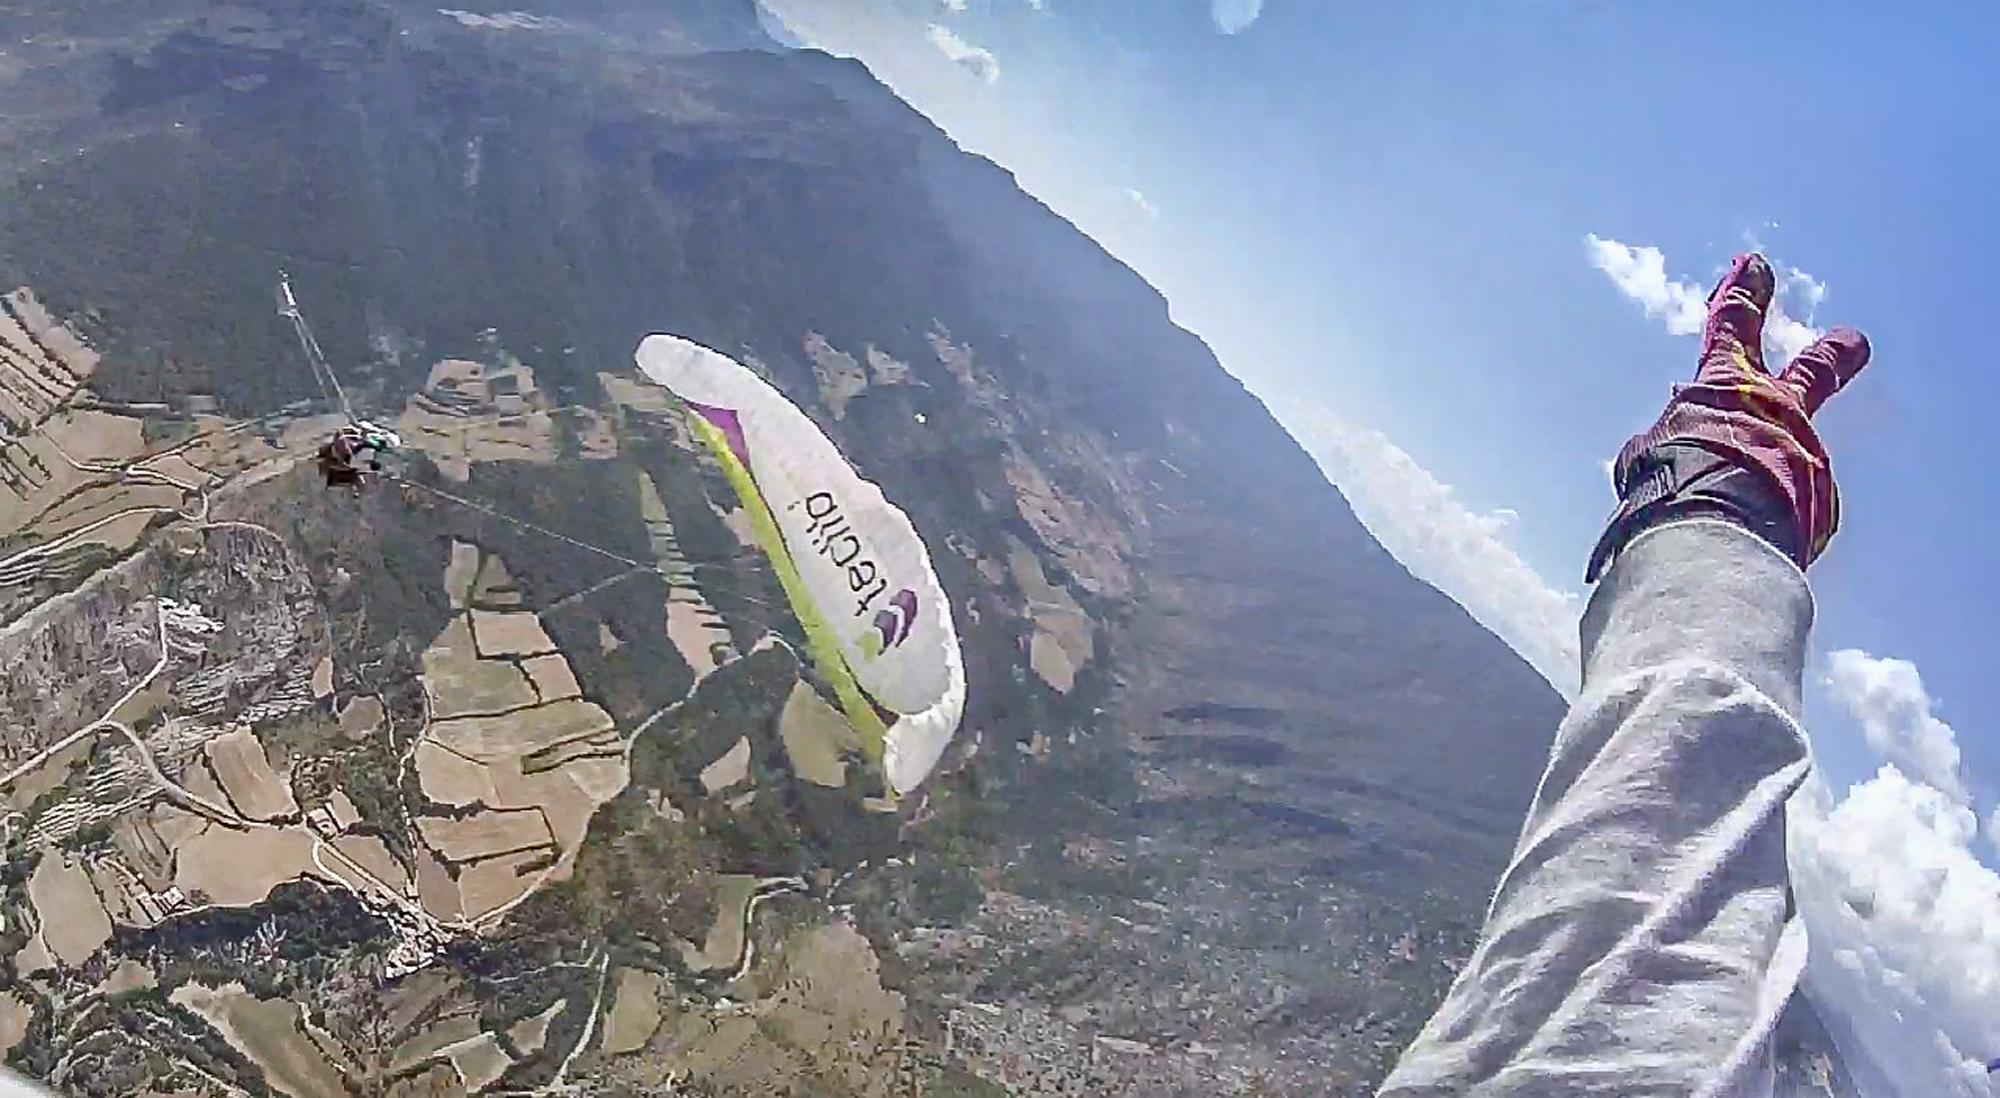 Don't Try This At Home Swing balancoire Pargliding Martin Schricke Francois Ragolski teclib'